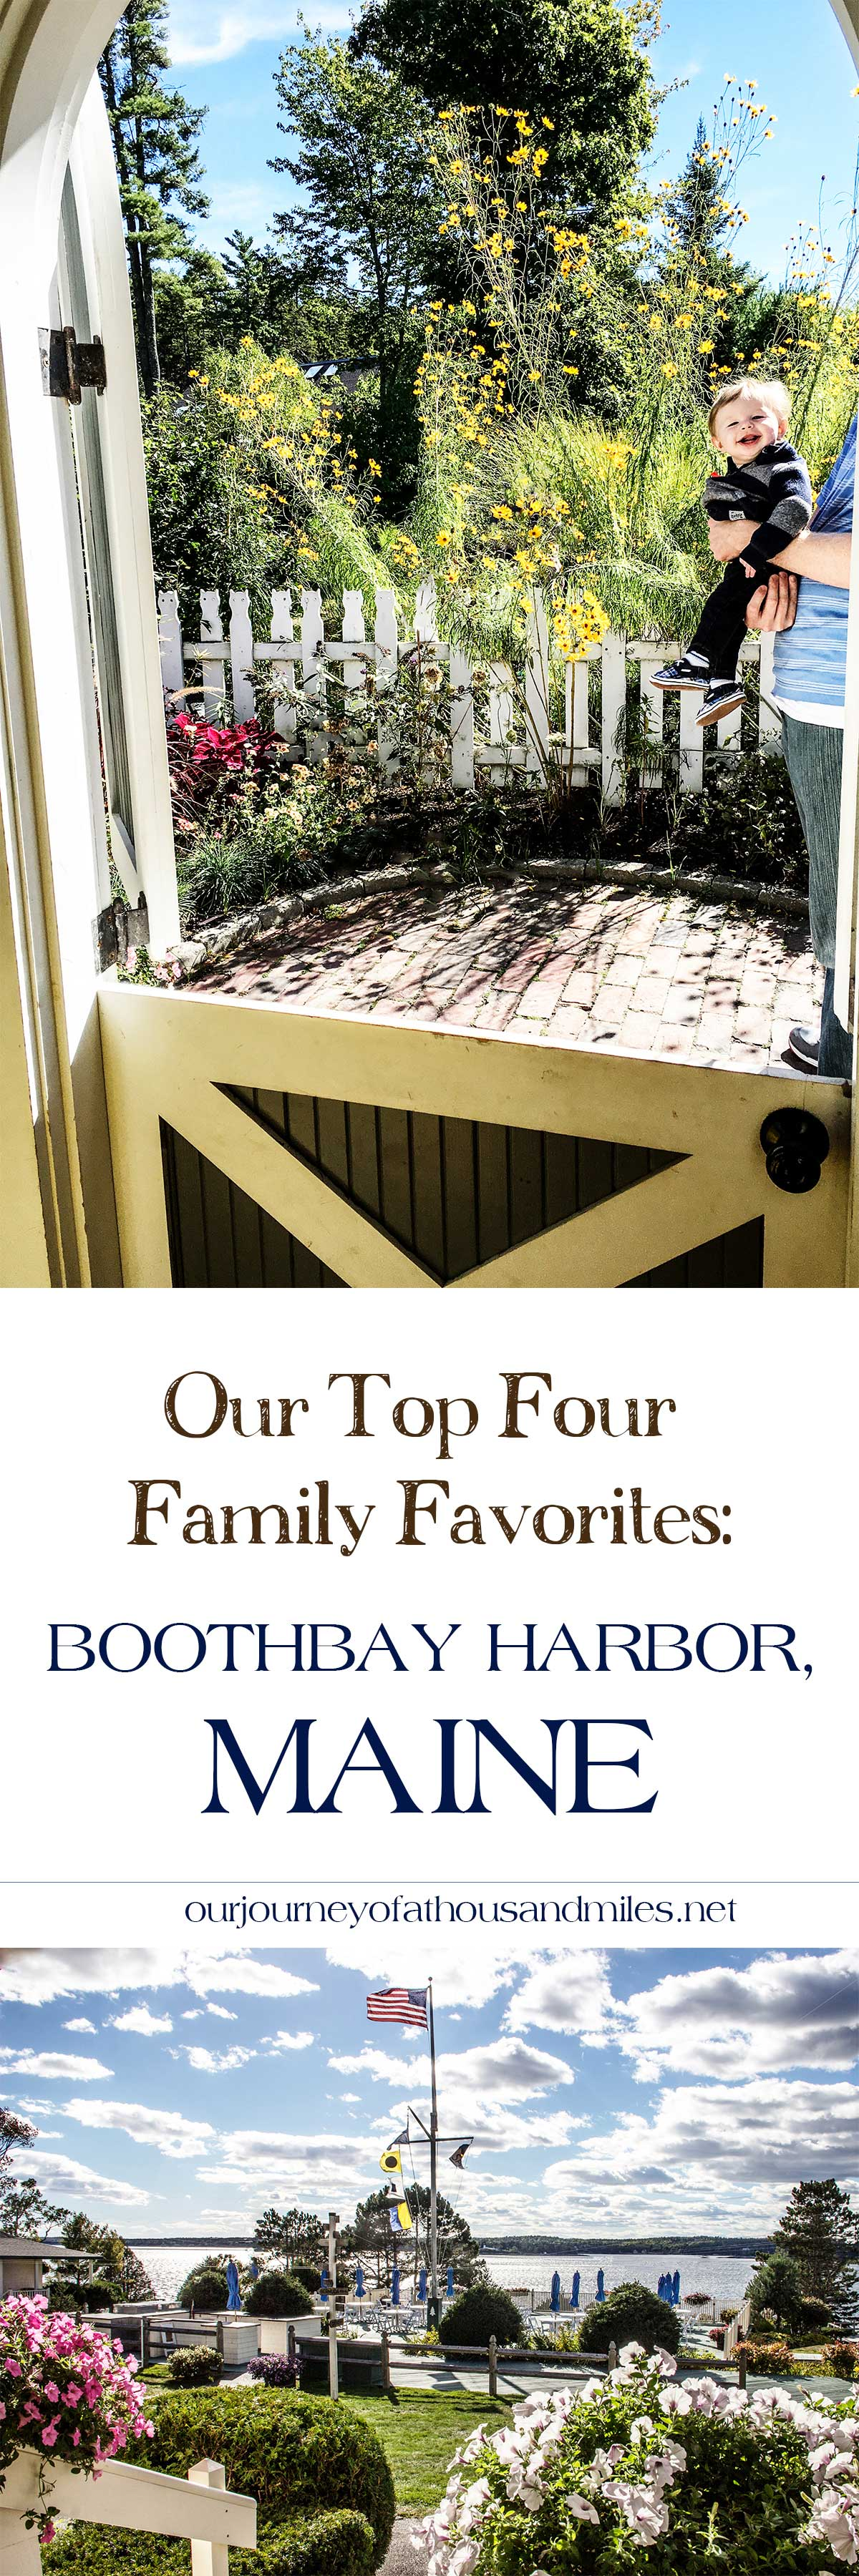 Our-Family-Favorites-Boothbay-Harbor-Maine